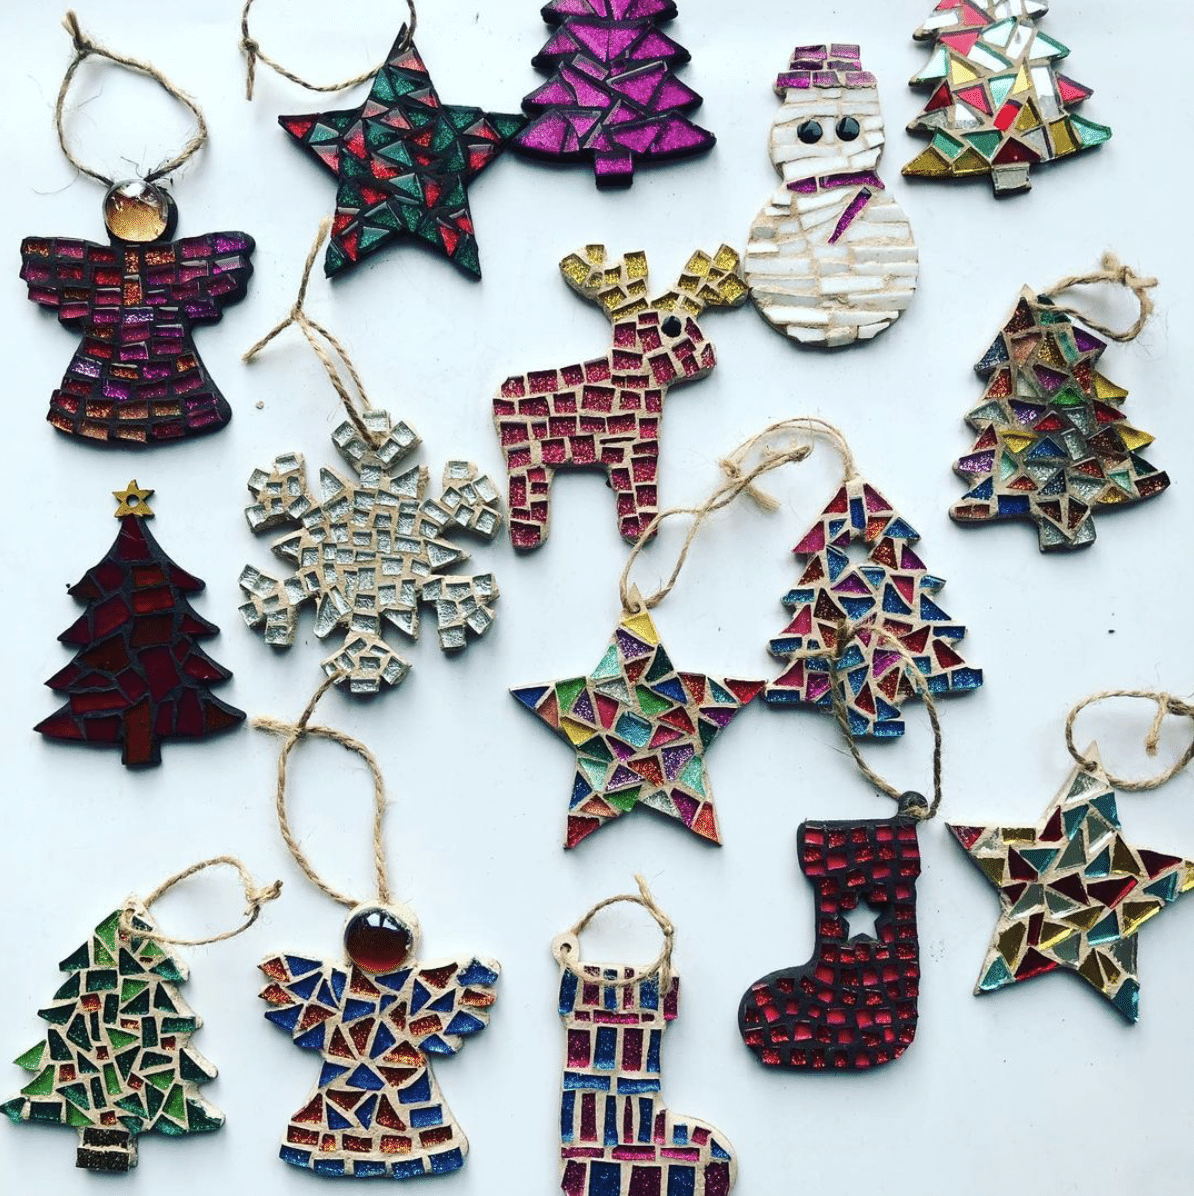 Collection of mosaic Christmas decorations